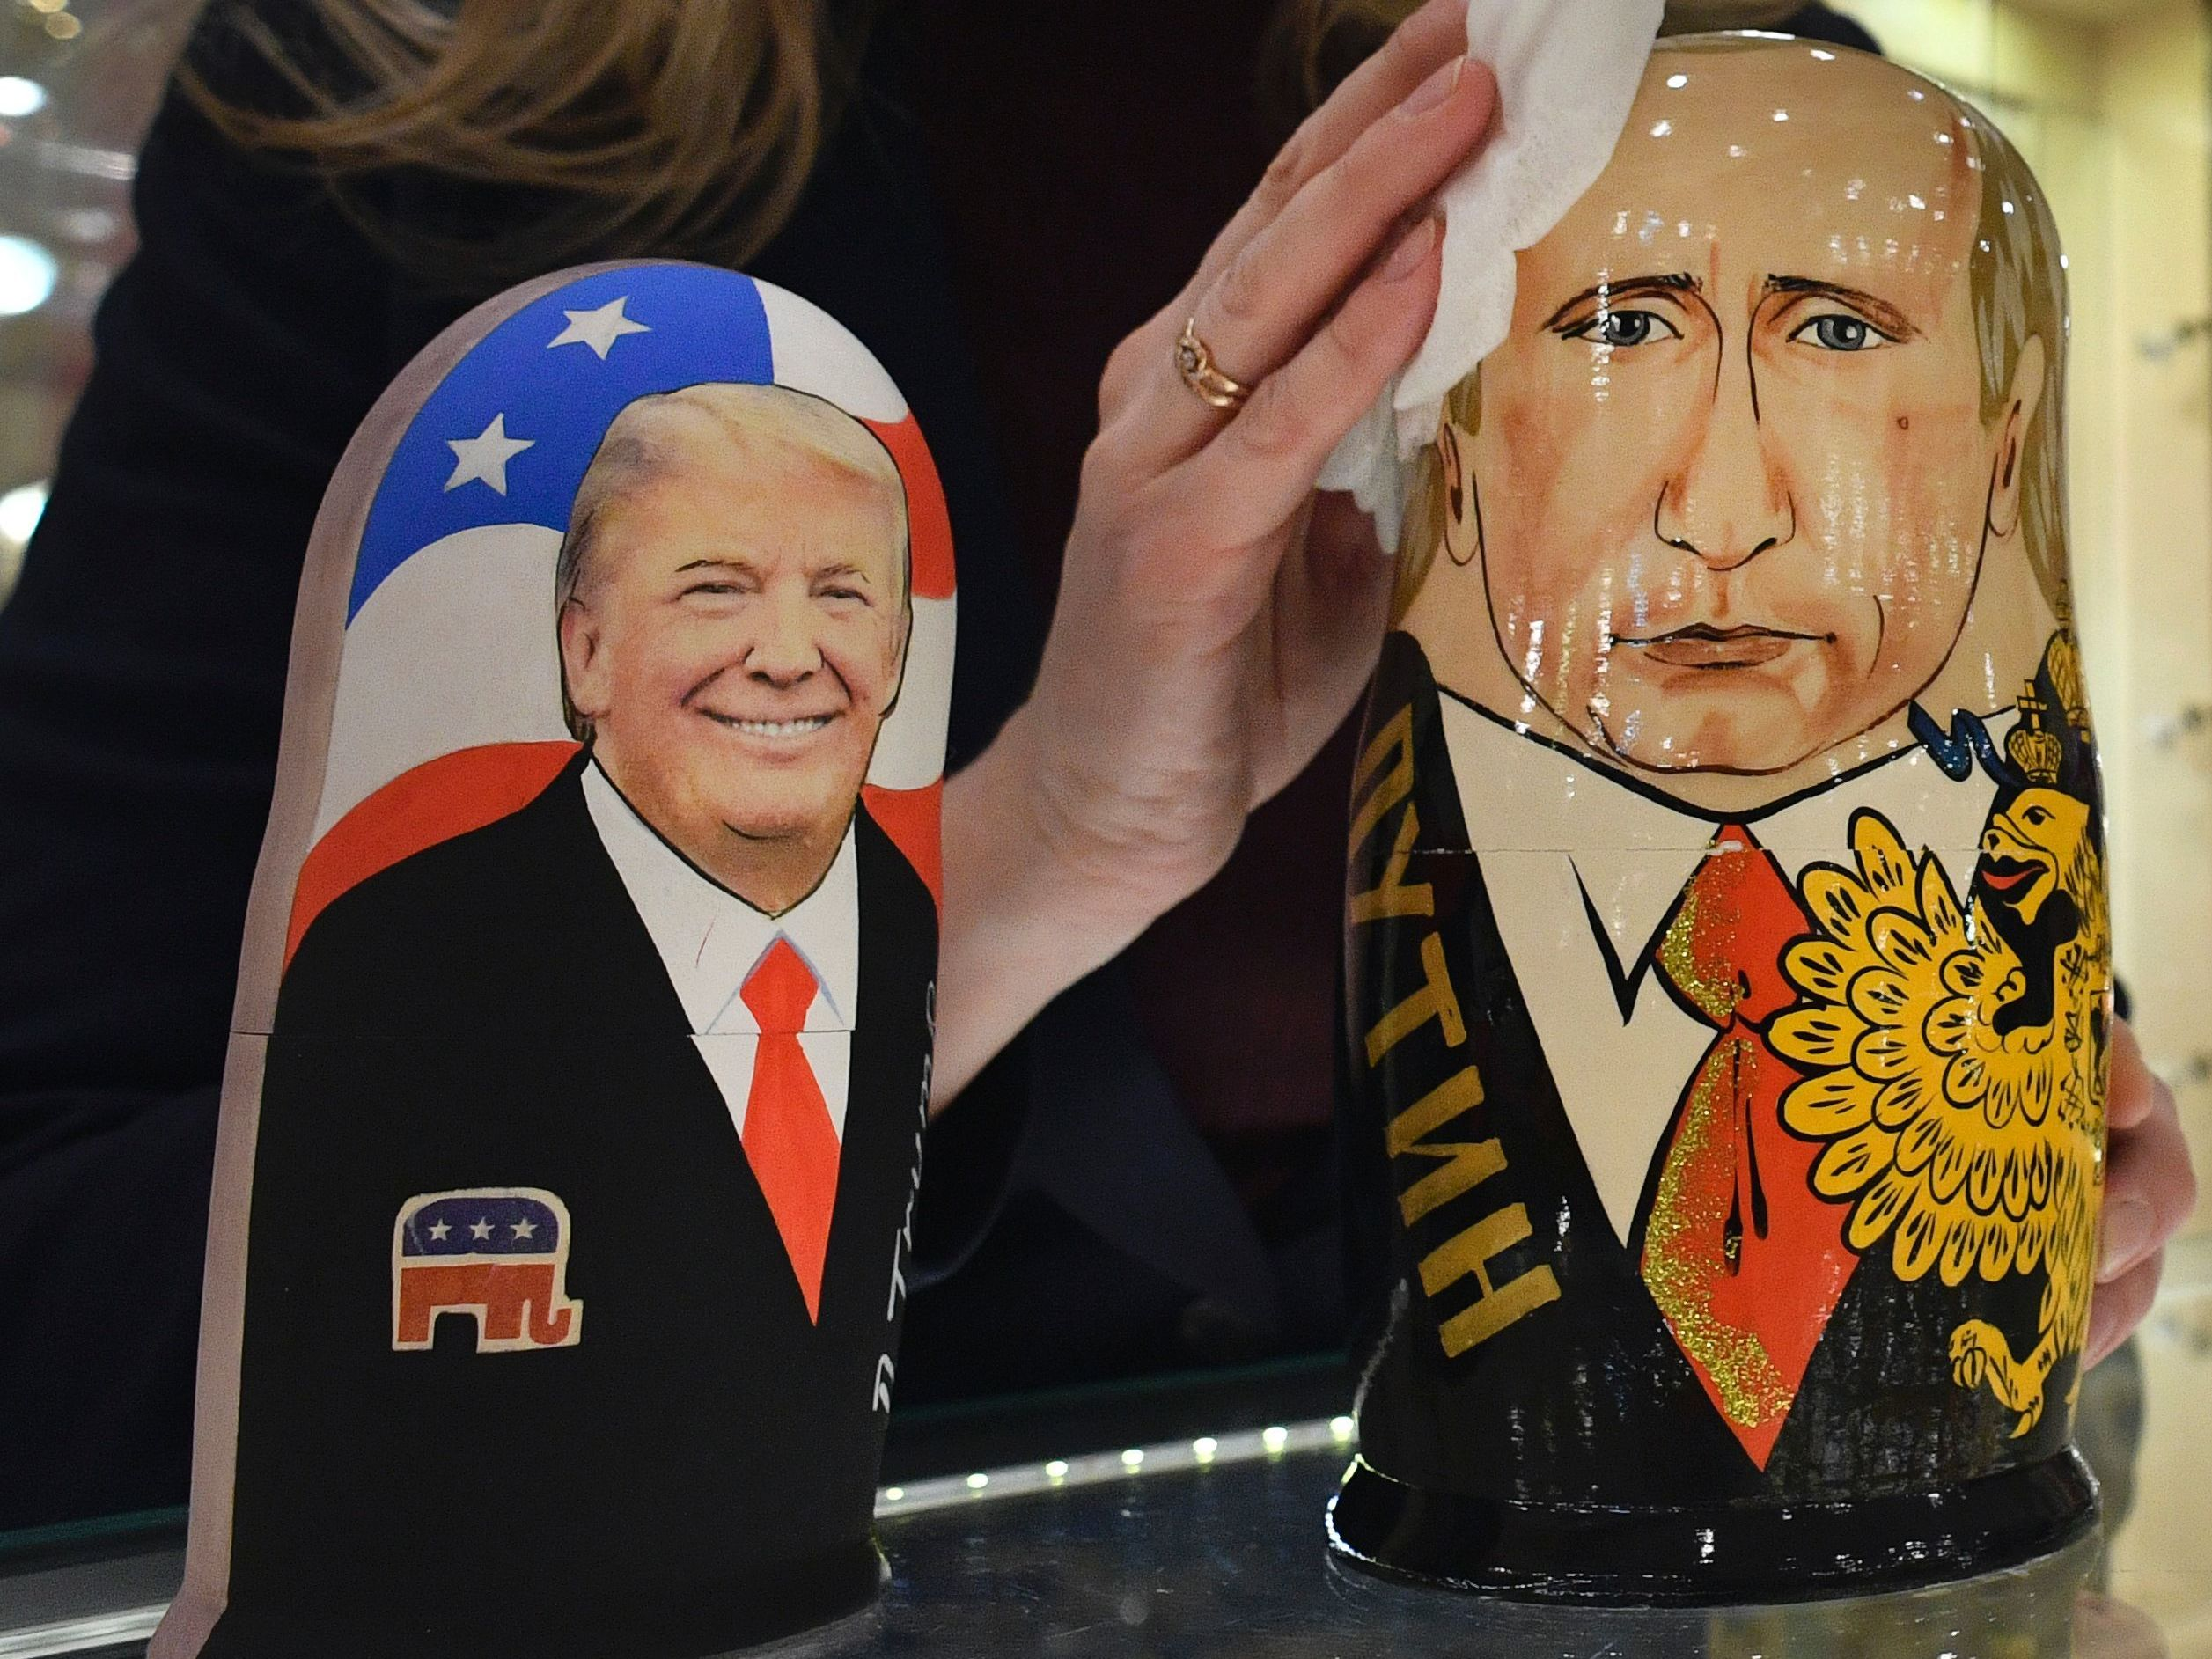 Trump Embraces One Of Russia's Favorite Propaganda Tactics — Whataboutism